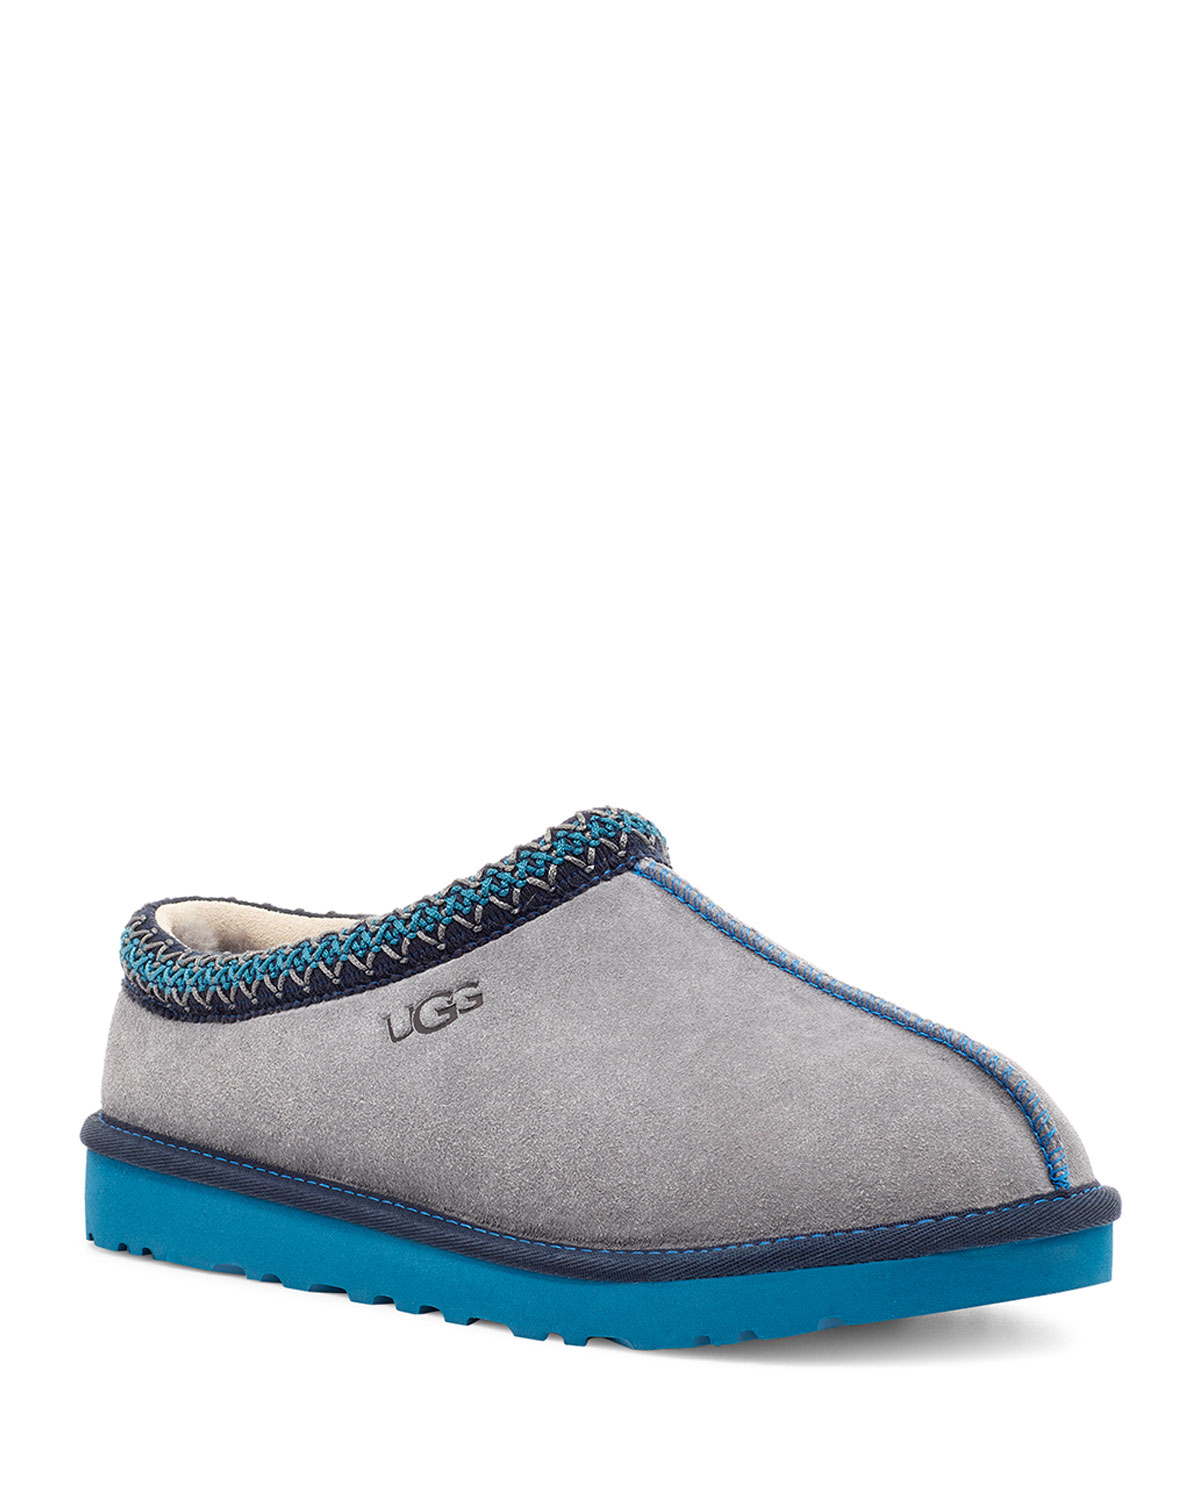 Men's Tasman Shearling Suede Mule Slipper